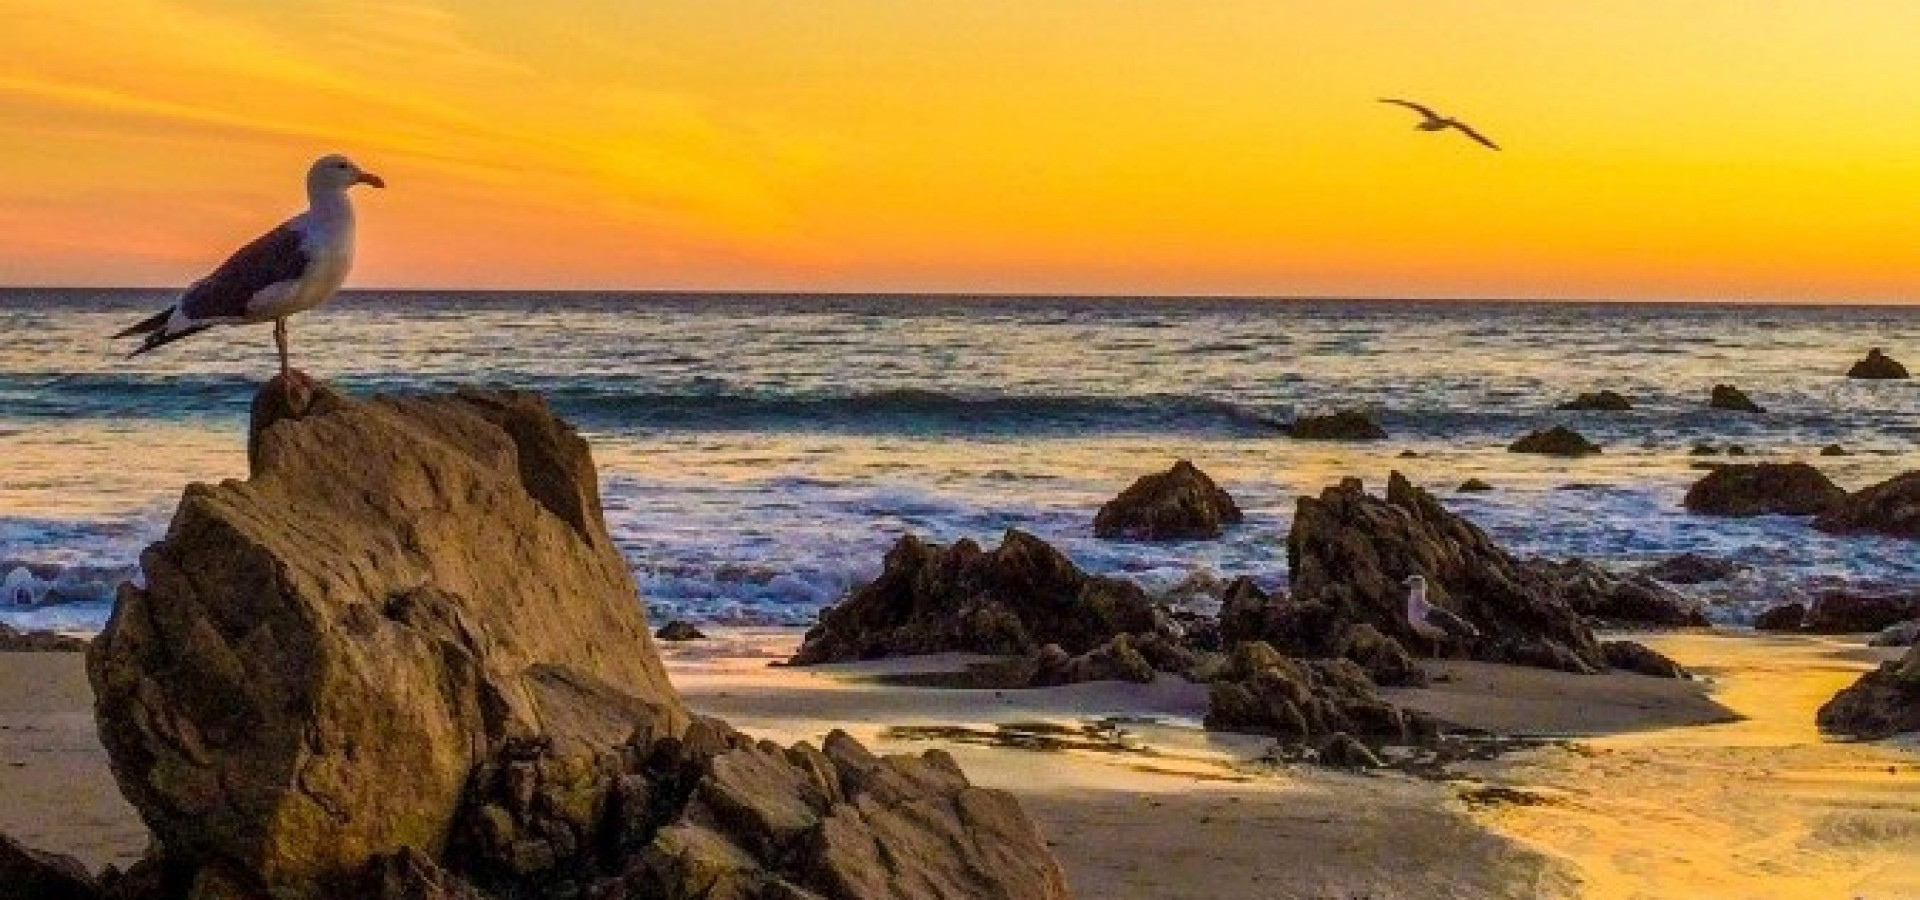 Best Photography Spots In Malibu California Top Tourist